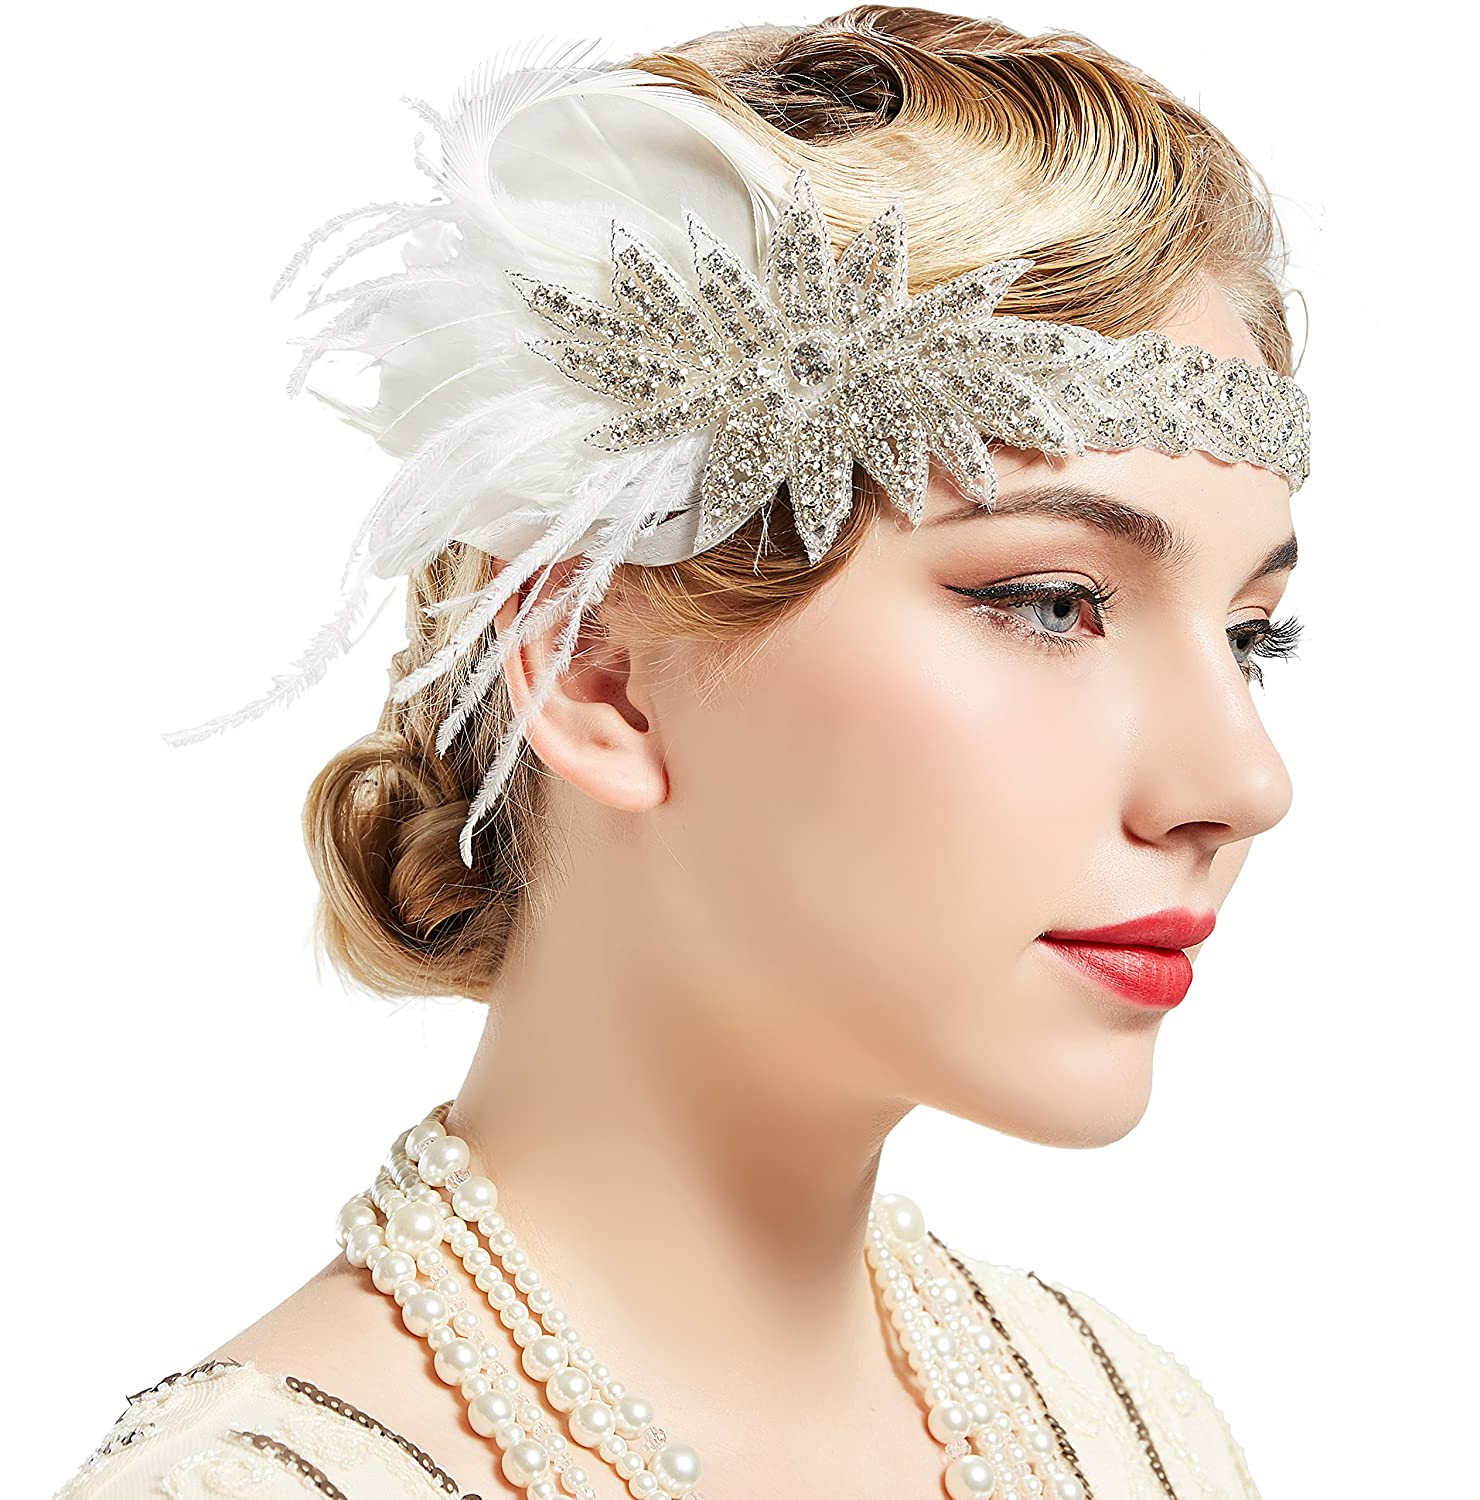 BABEYOND Vintage 1920s Flapper Headband Roaring 20s Great Gatsby Headpiece with Feather 1920s Flapper Gatsby Hair Accessories (White)